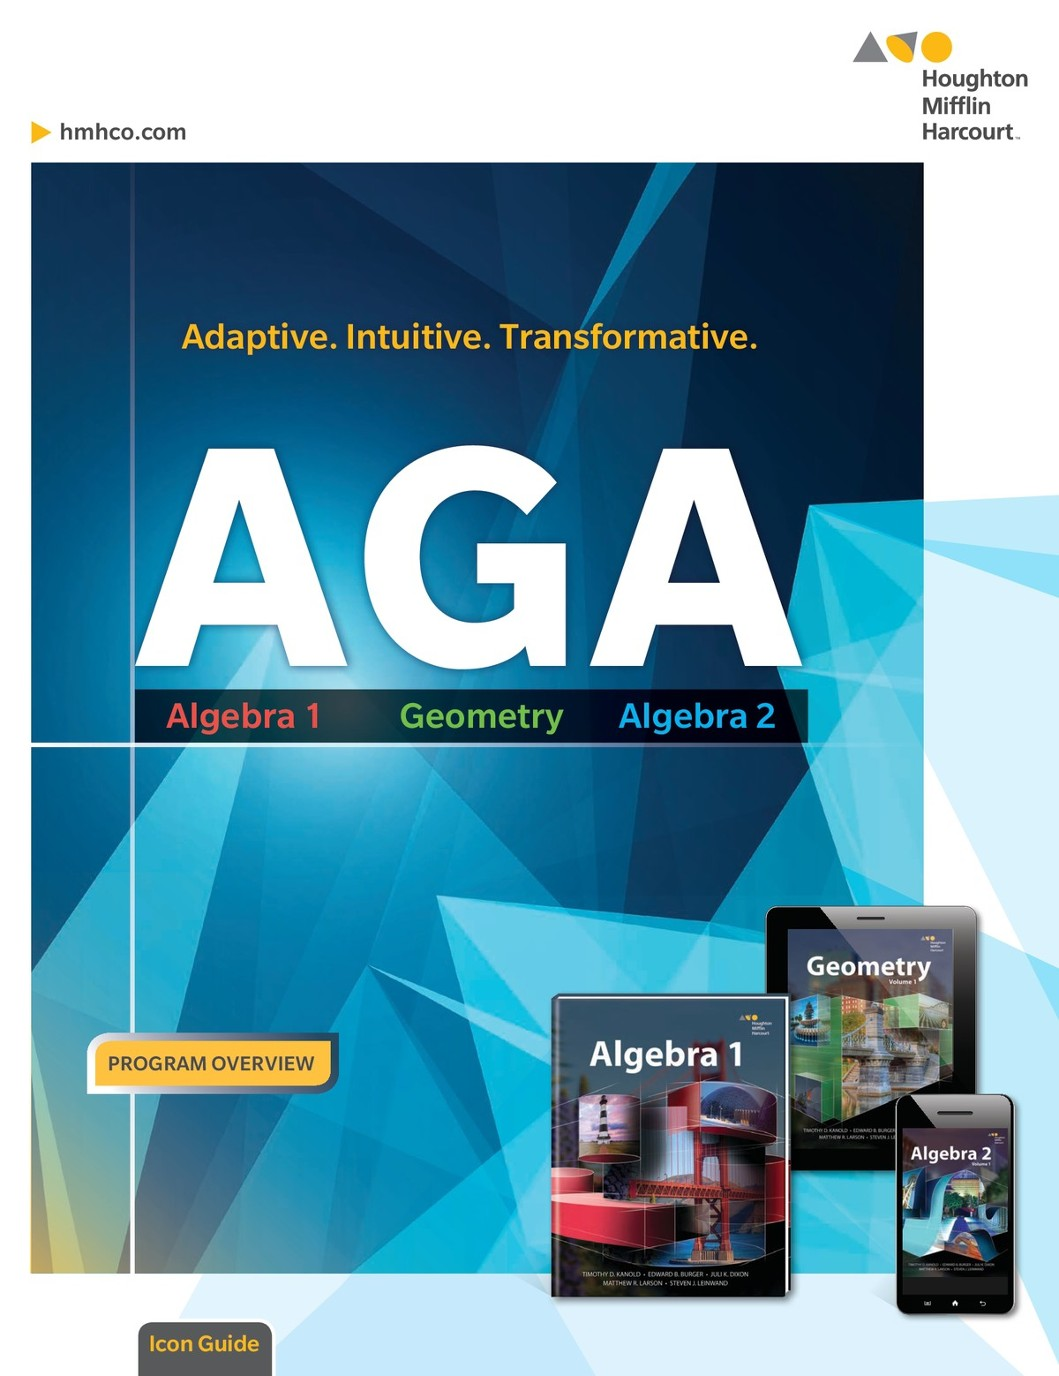 162226_AGA2015_Overview